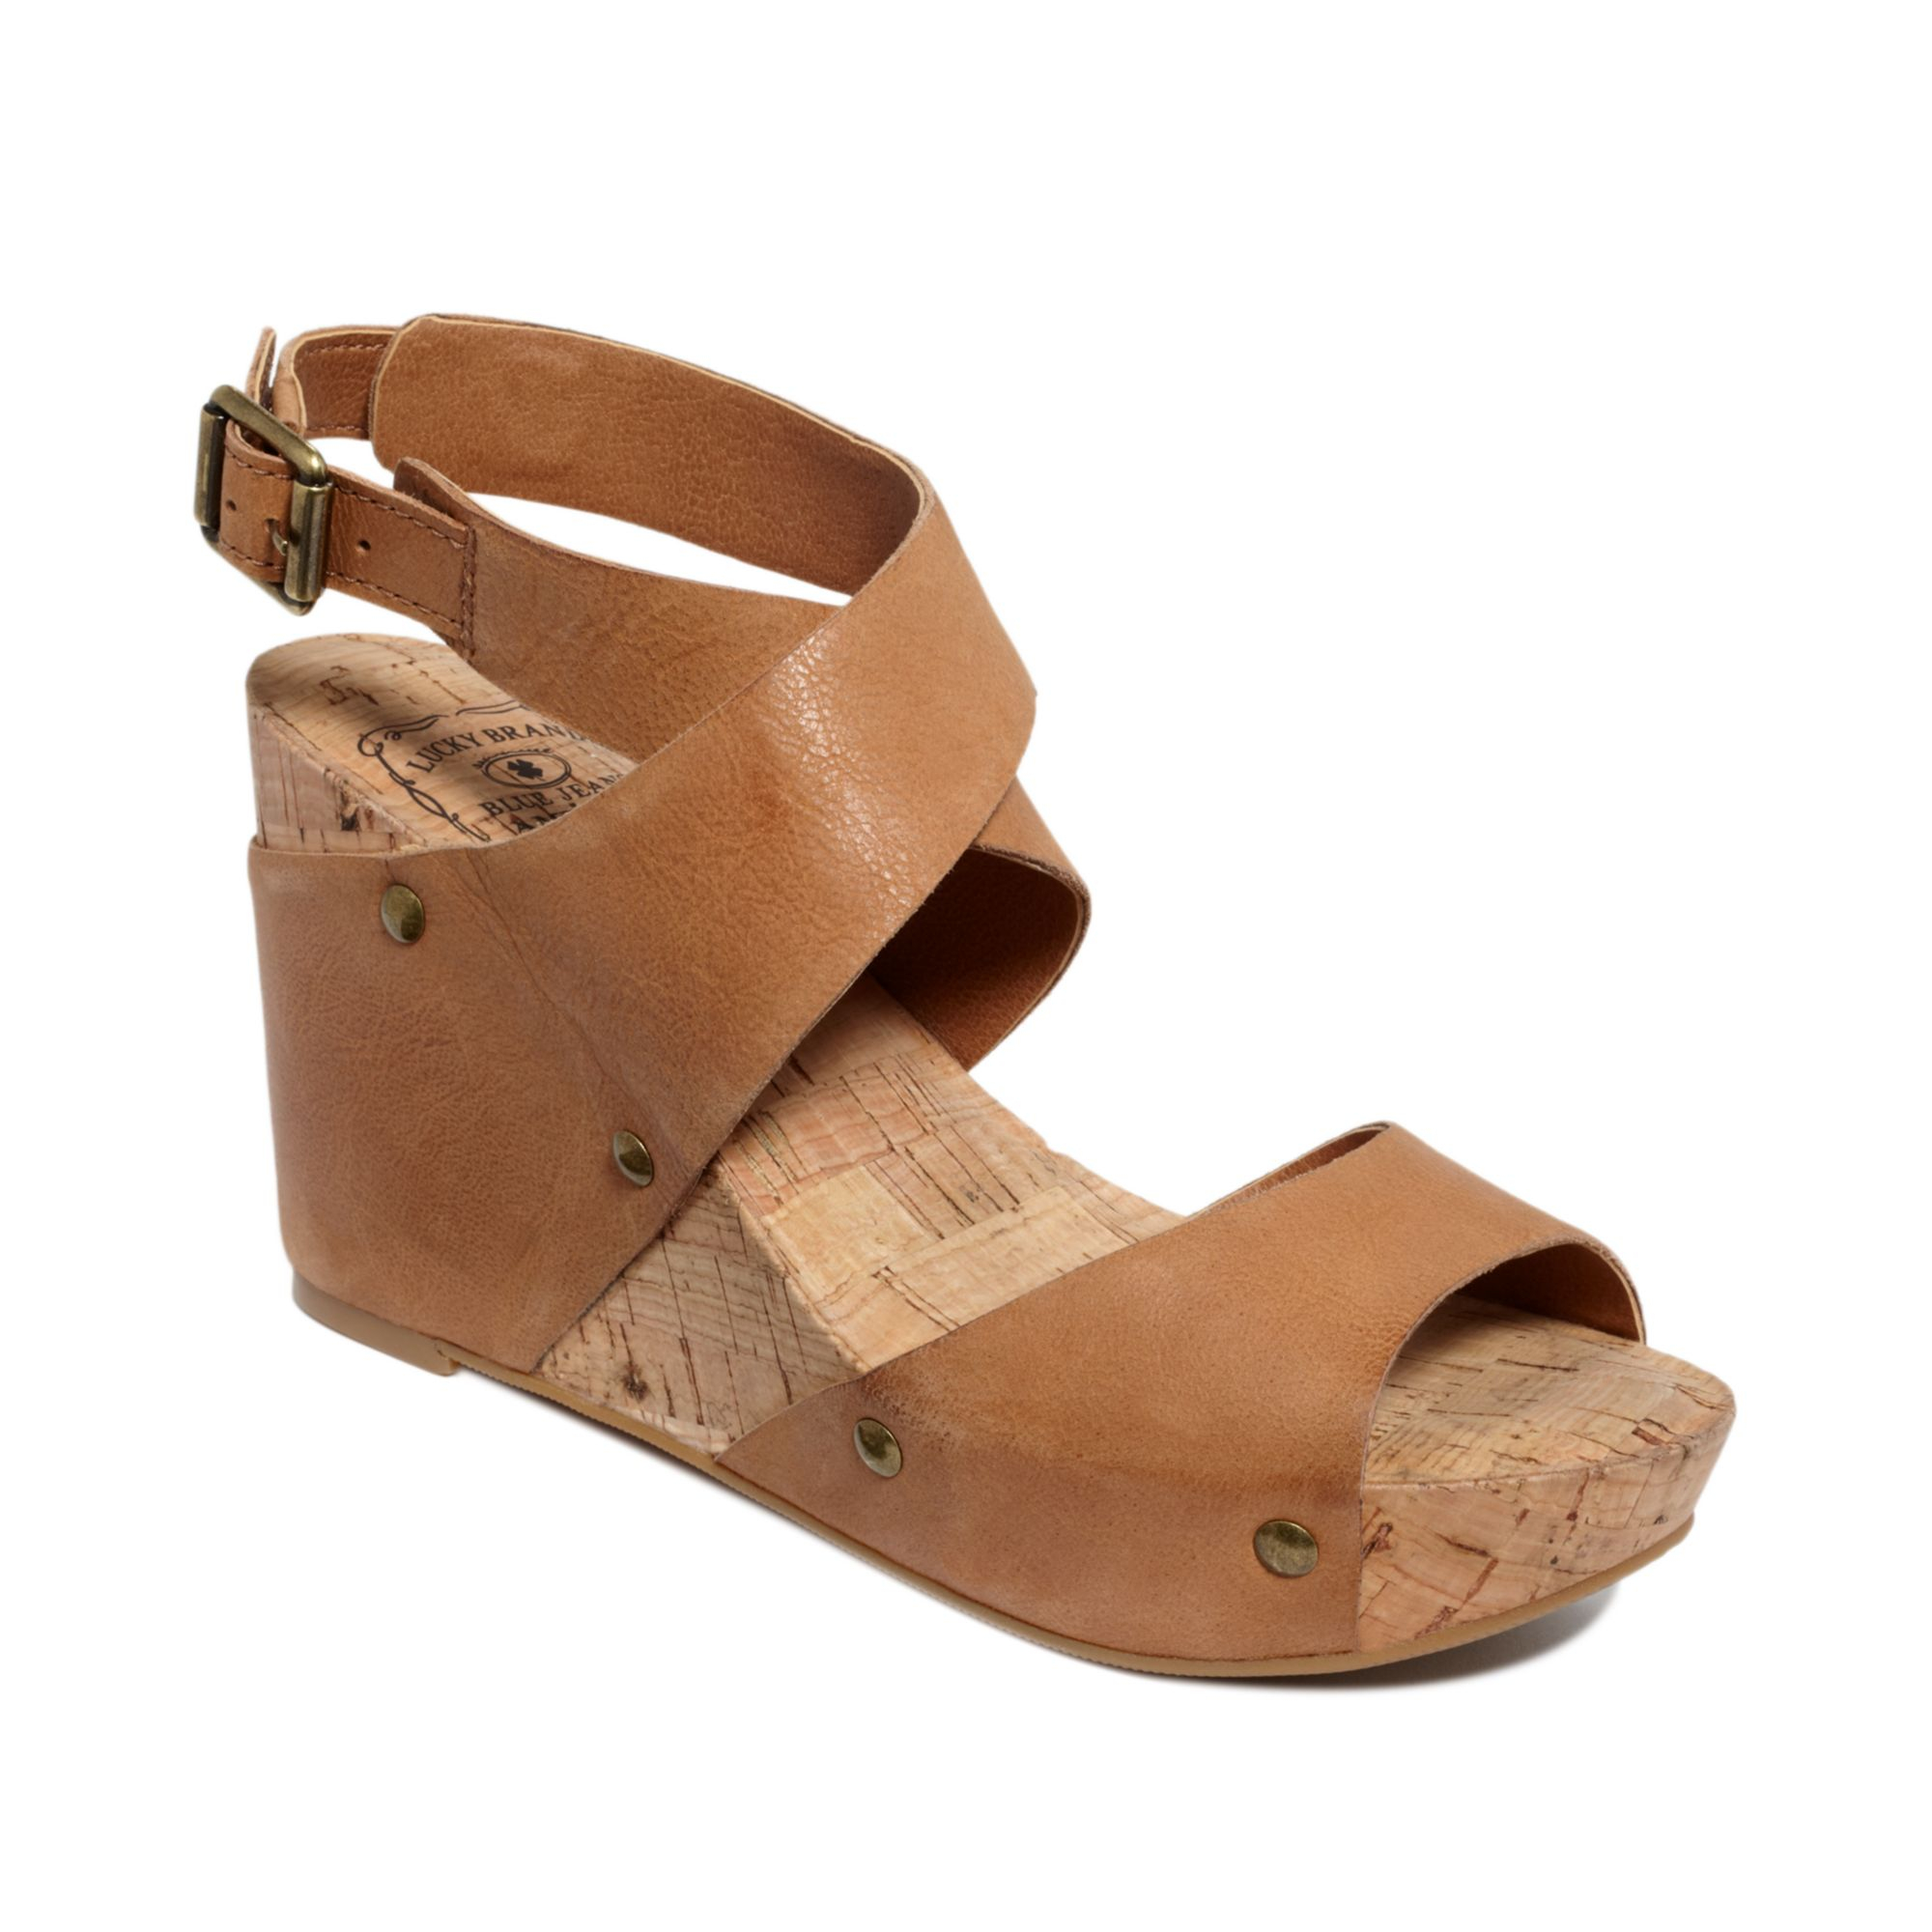 9380e862147 Lyst - Lucky Brand Moran Wedge Sandals in Brown